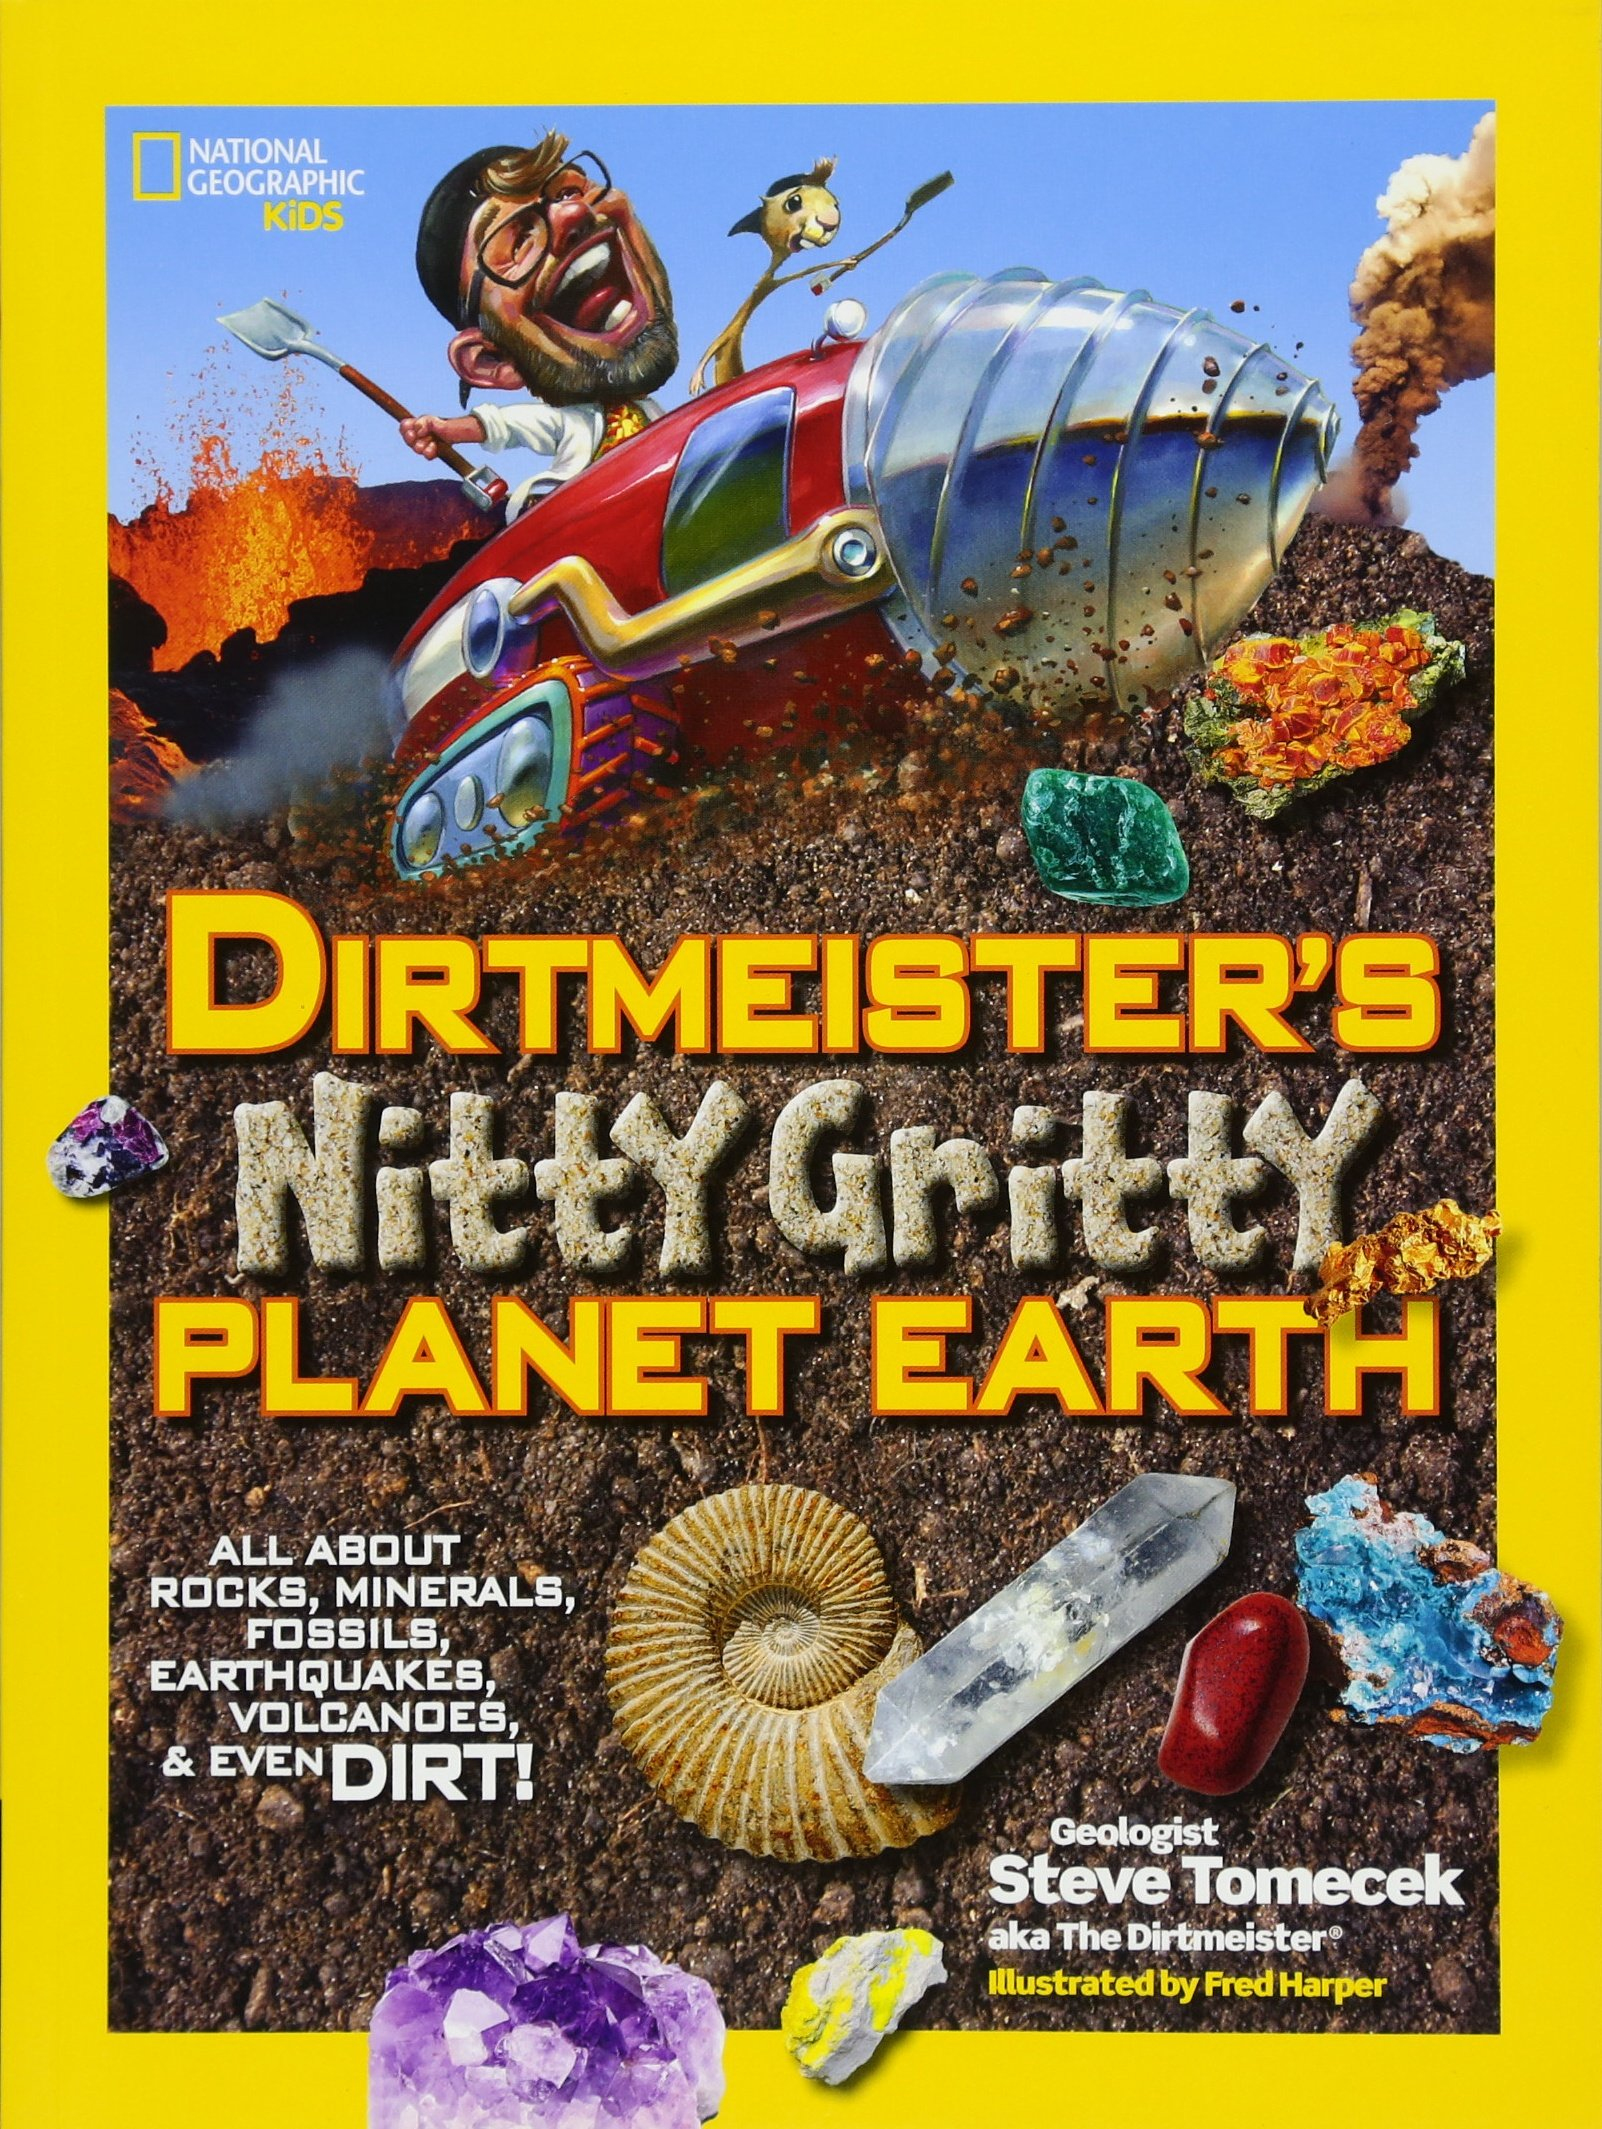 dirtmeister-s-nitty-gritty-planet-earth-all-about-rocks-minerals-fossils-earthquakes-volcanoes-even-dirt-national-geographic-kids